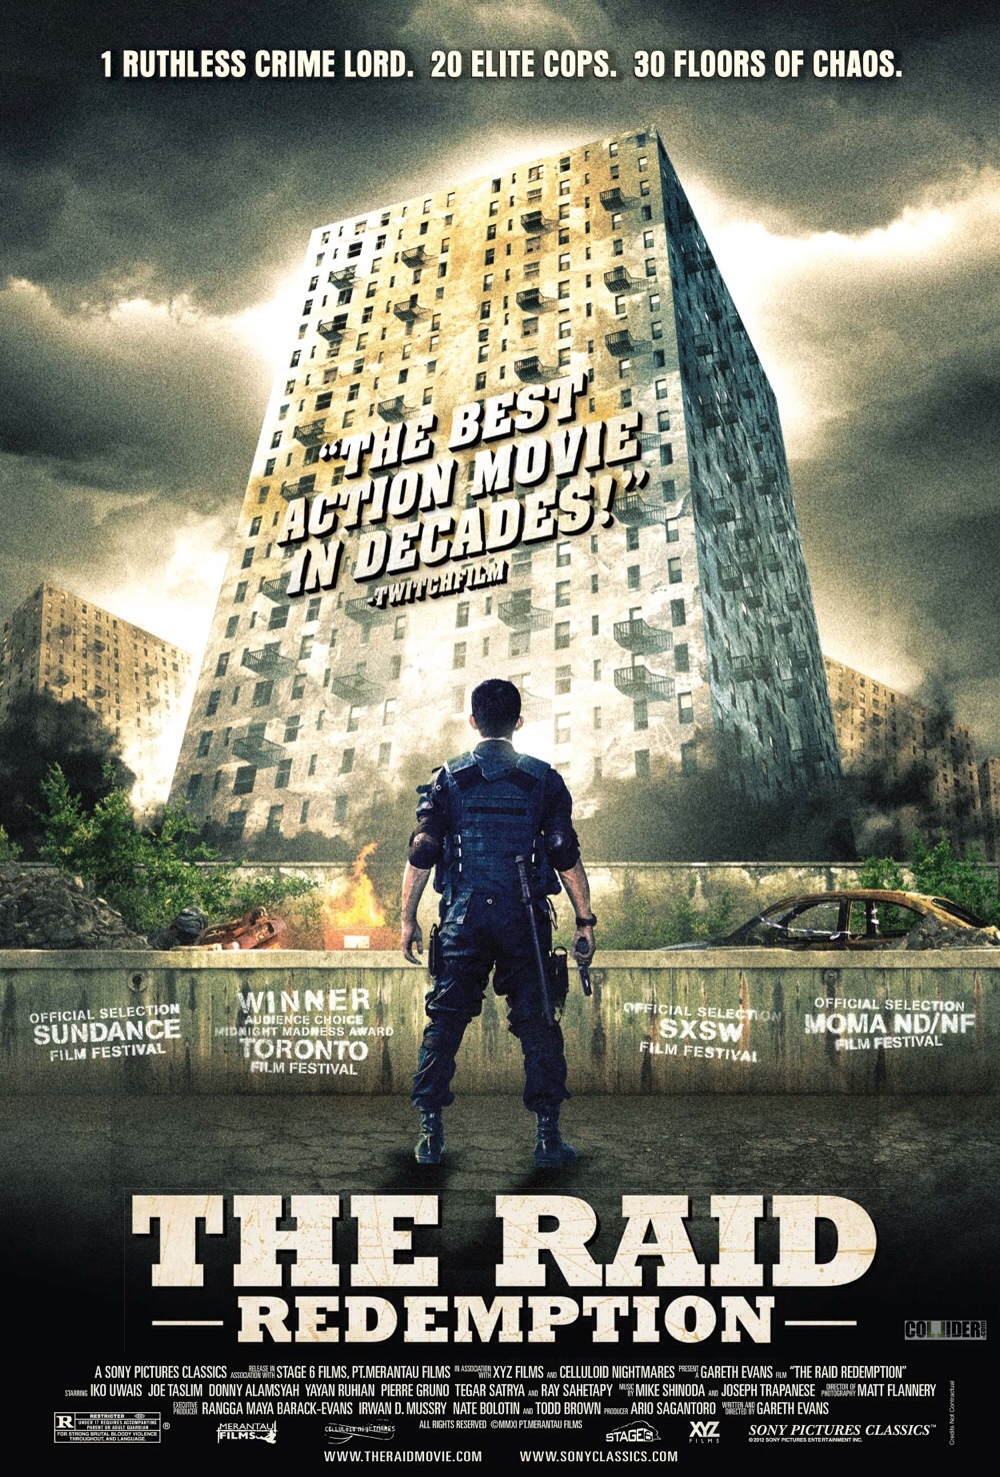 The Raid Redemption Movie Poster